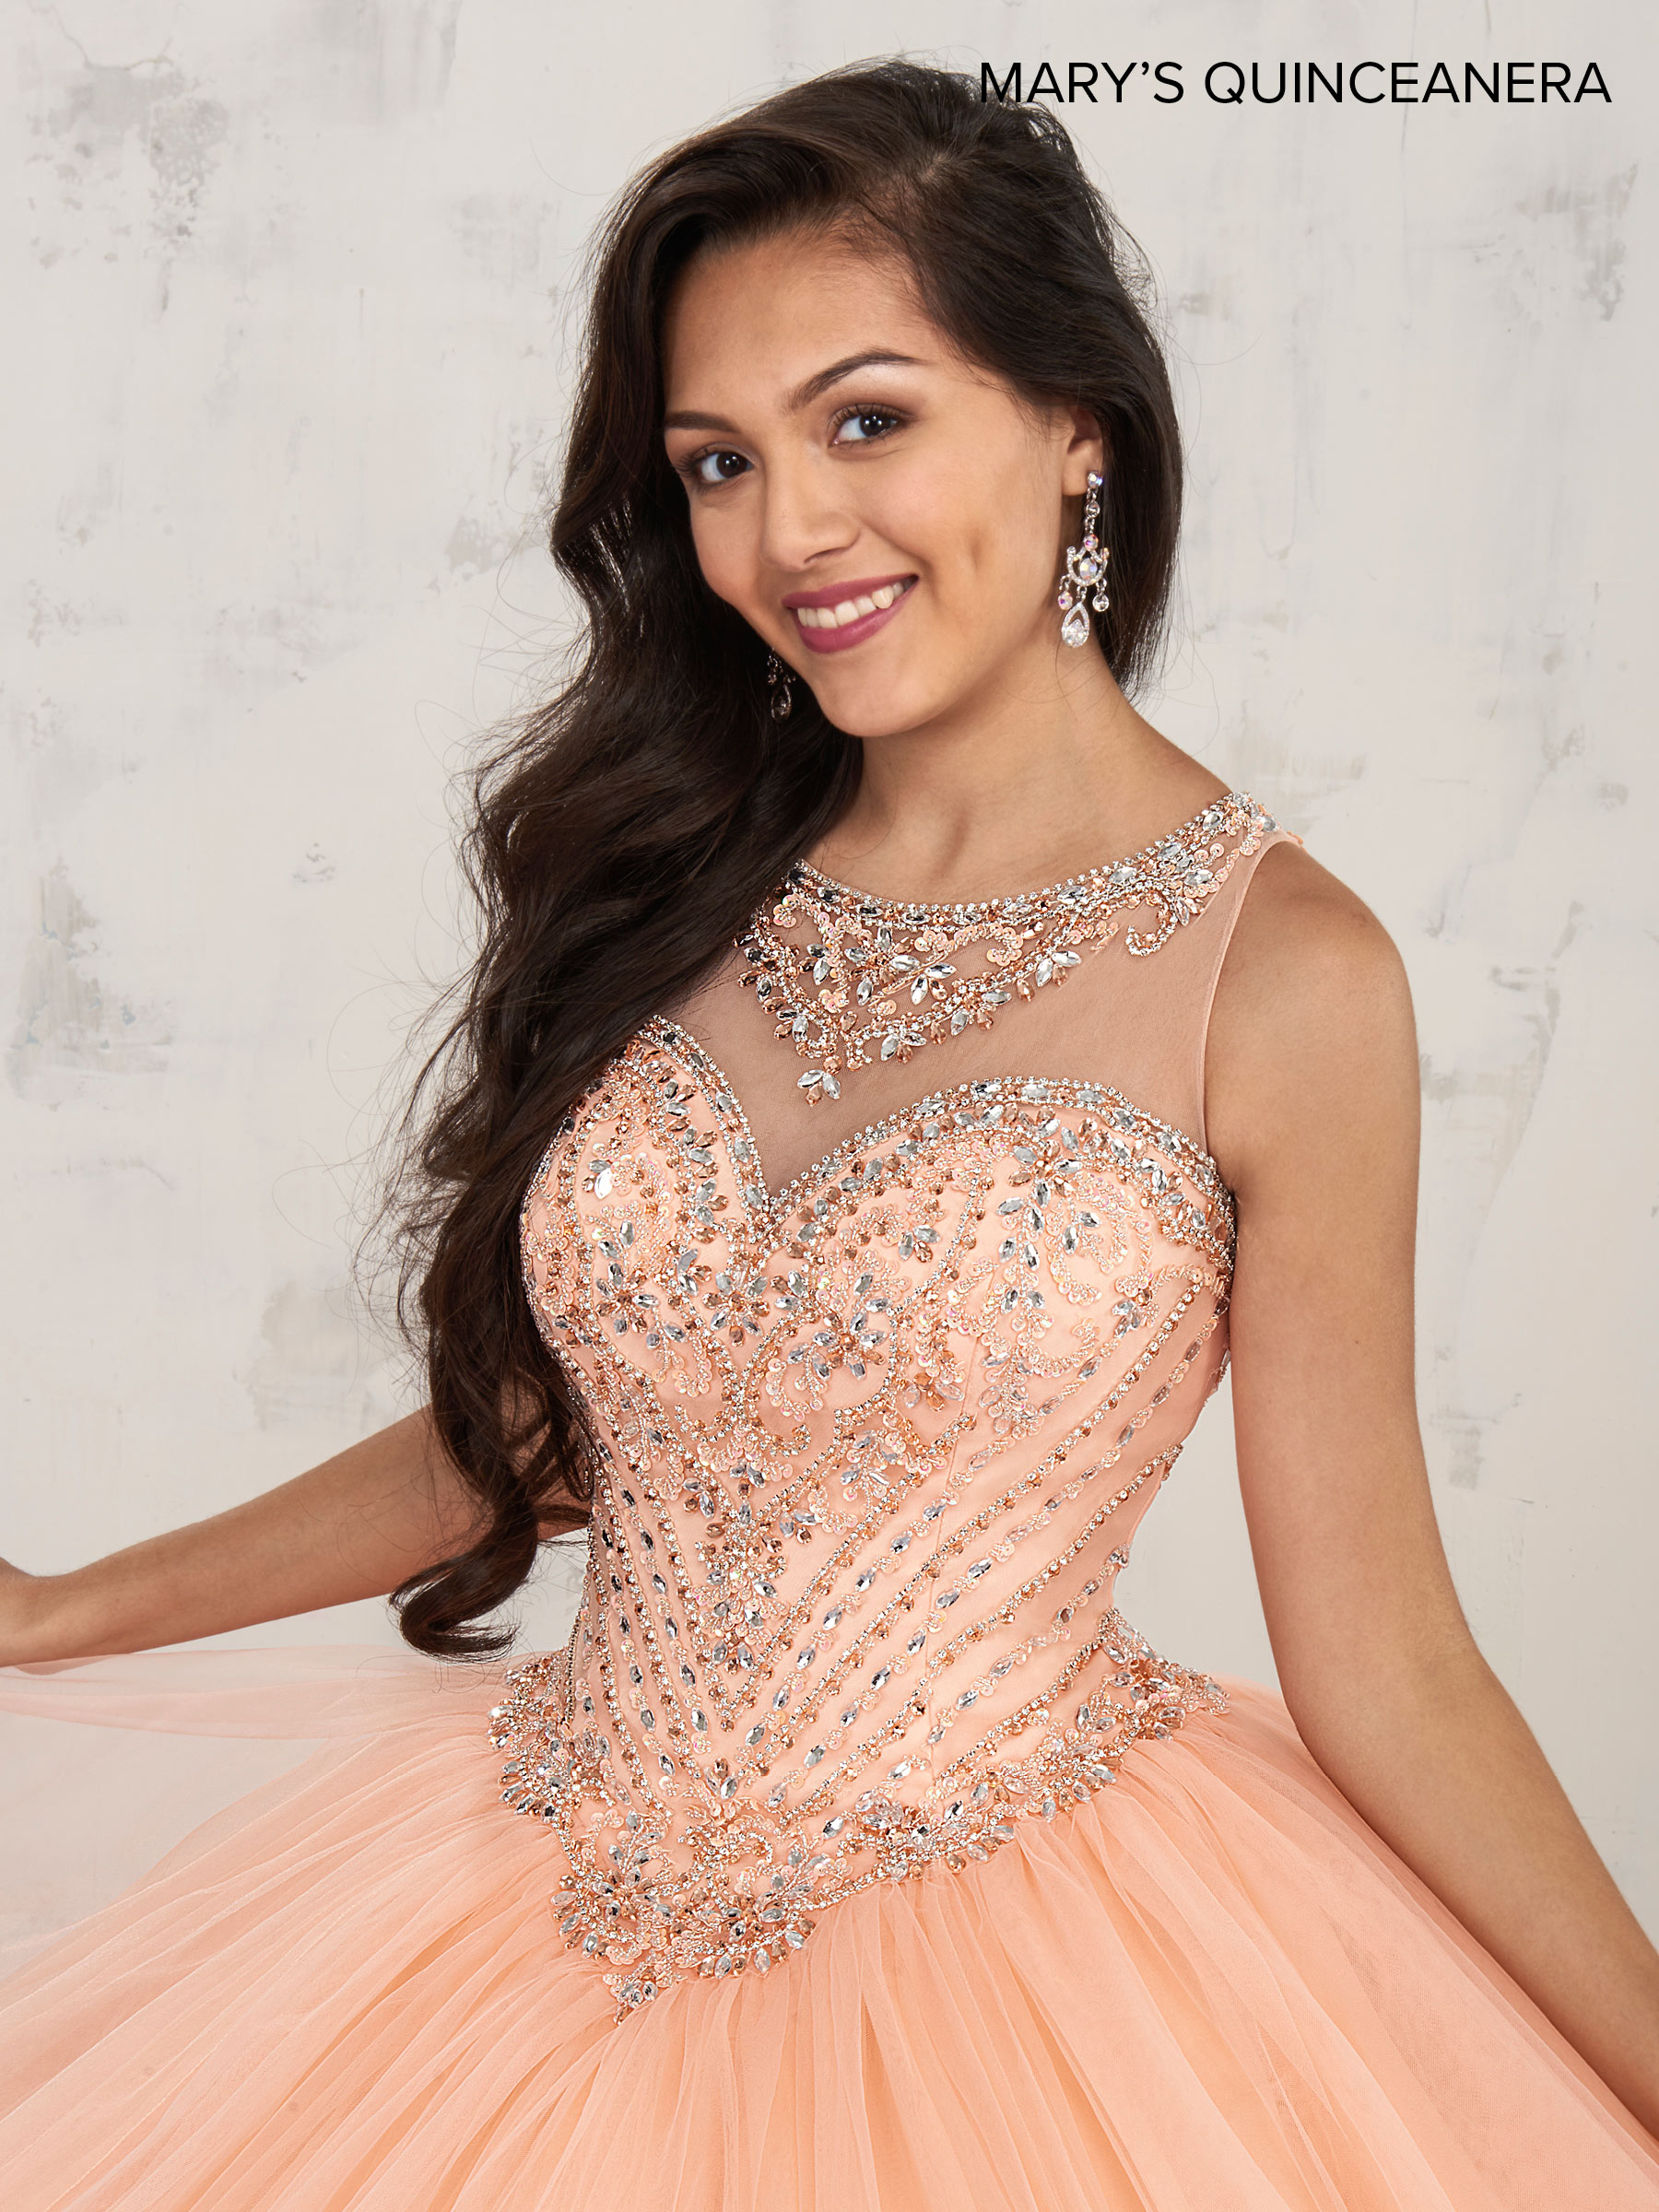 Marys Quinceanera Dresses | Mary's Quinceanera | Style - MQ1012